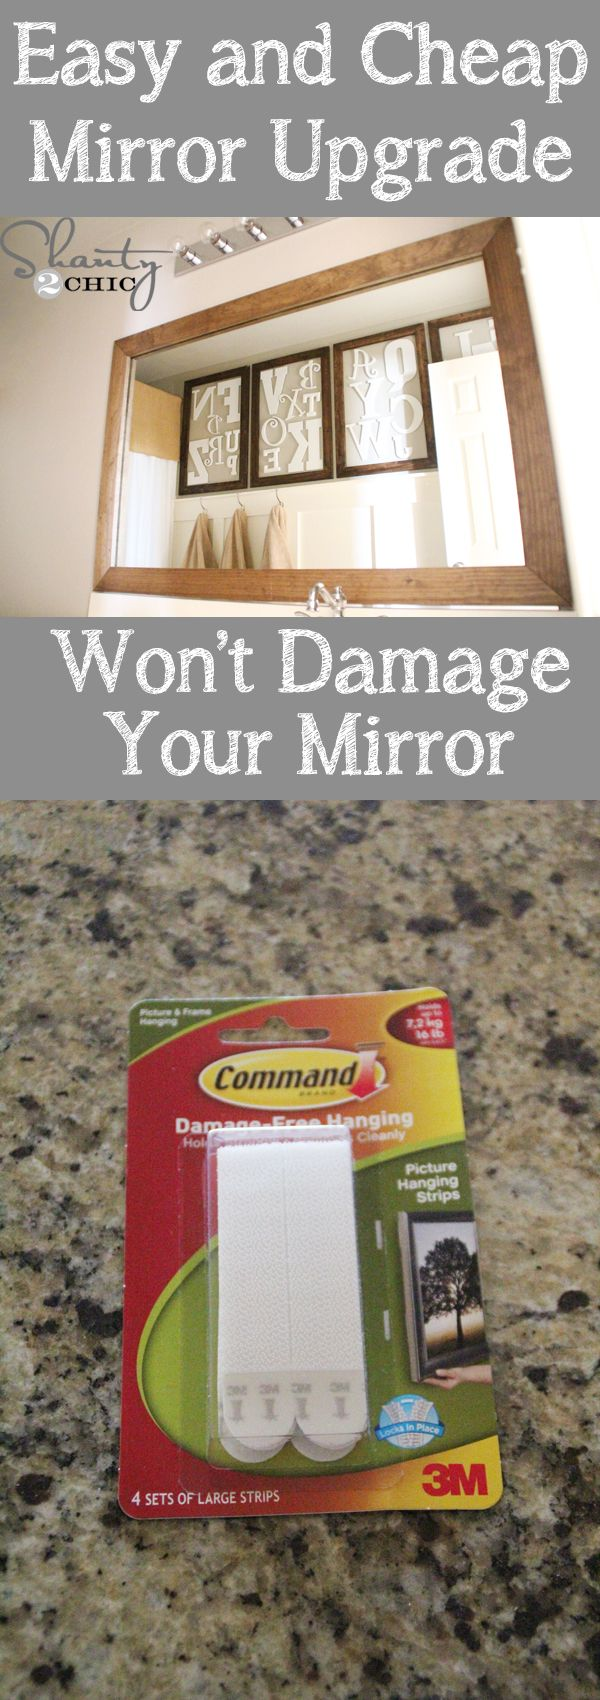 Cheap and easy way to upgrade a builder mirror!  Wont damage mirror!